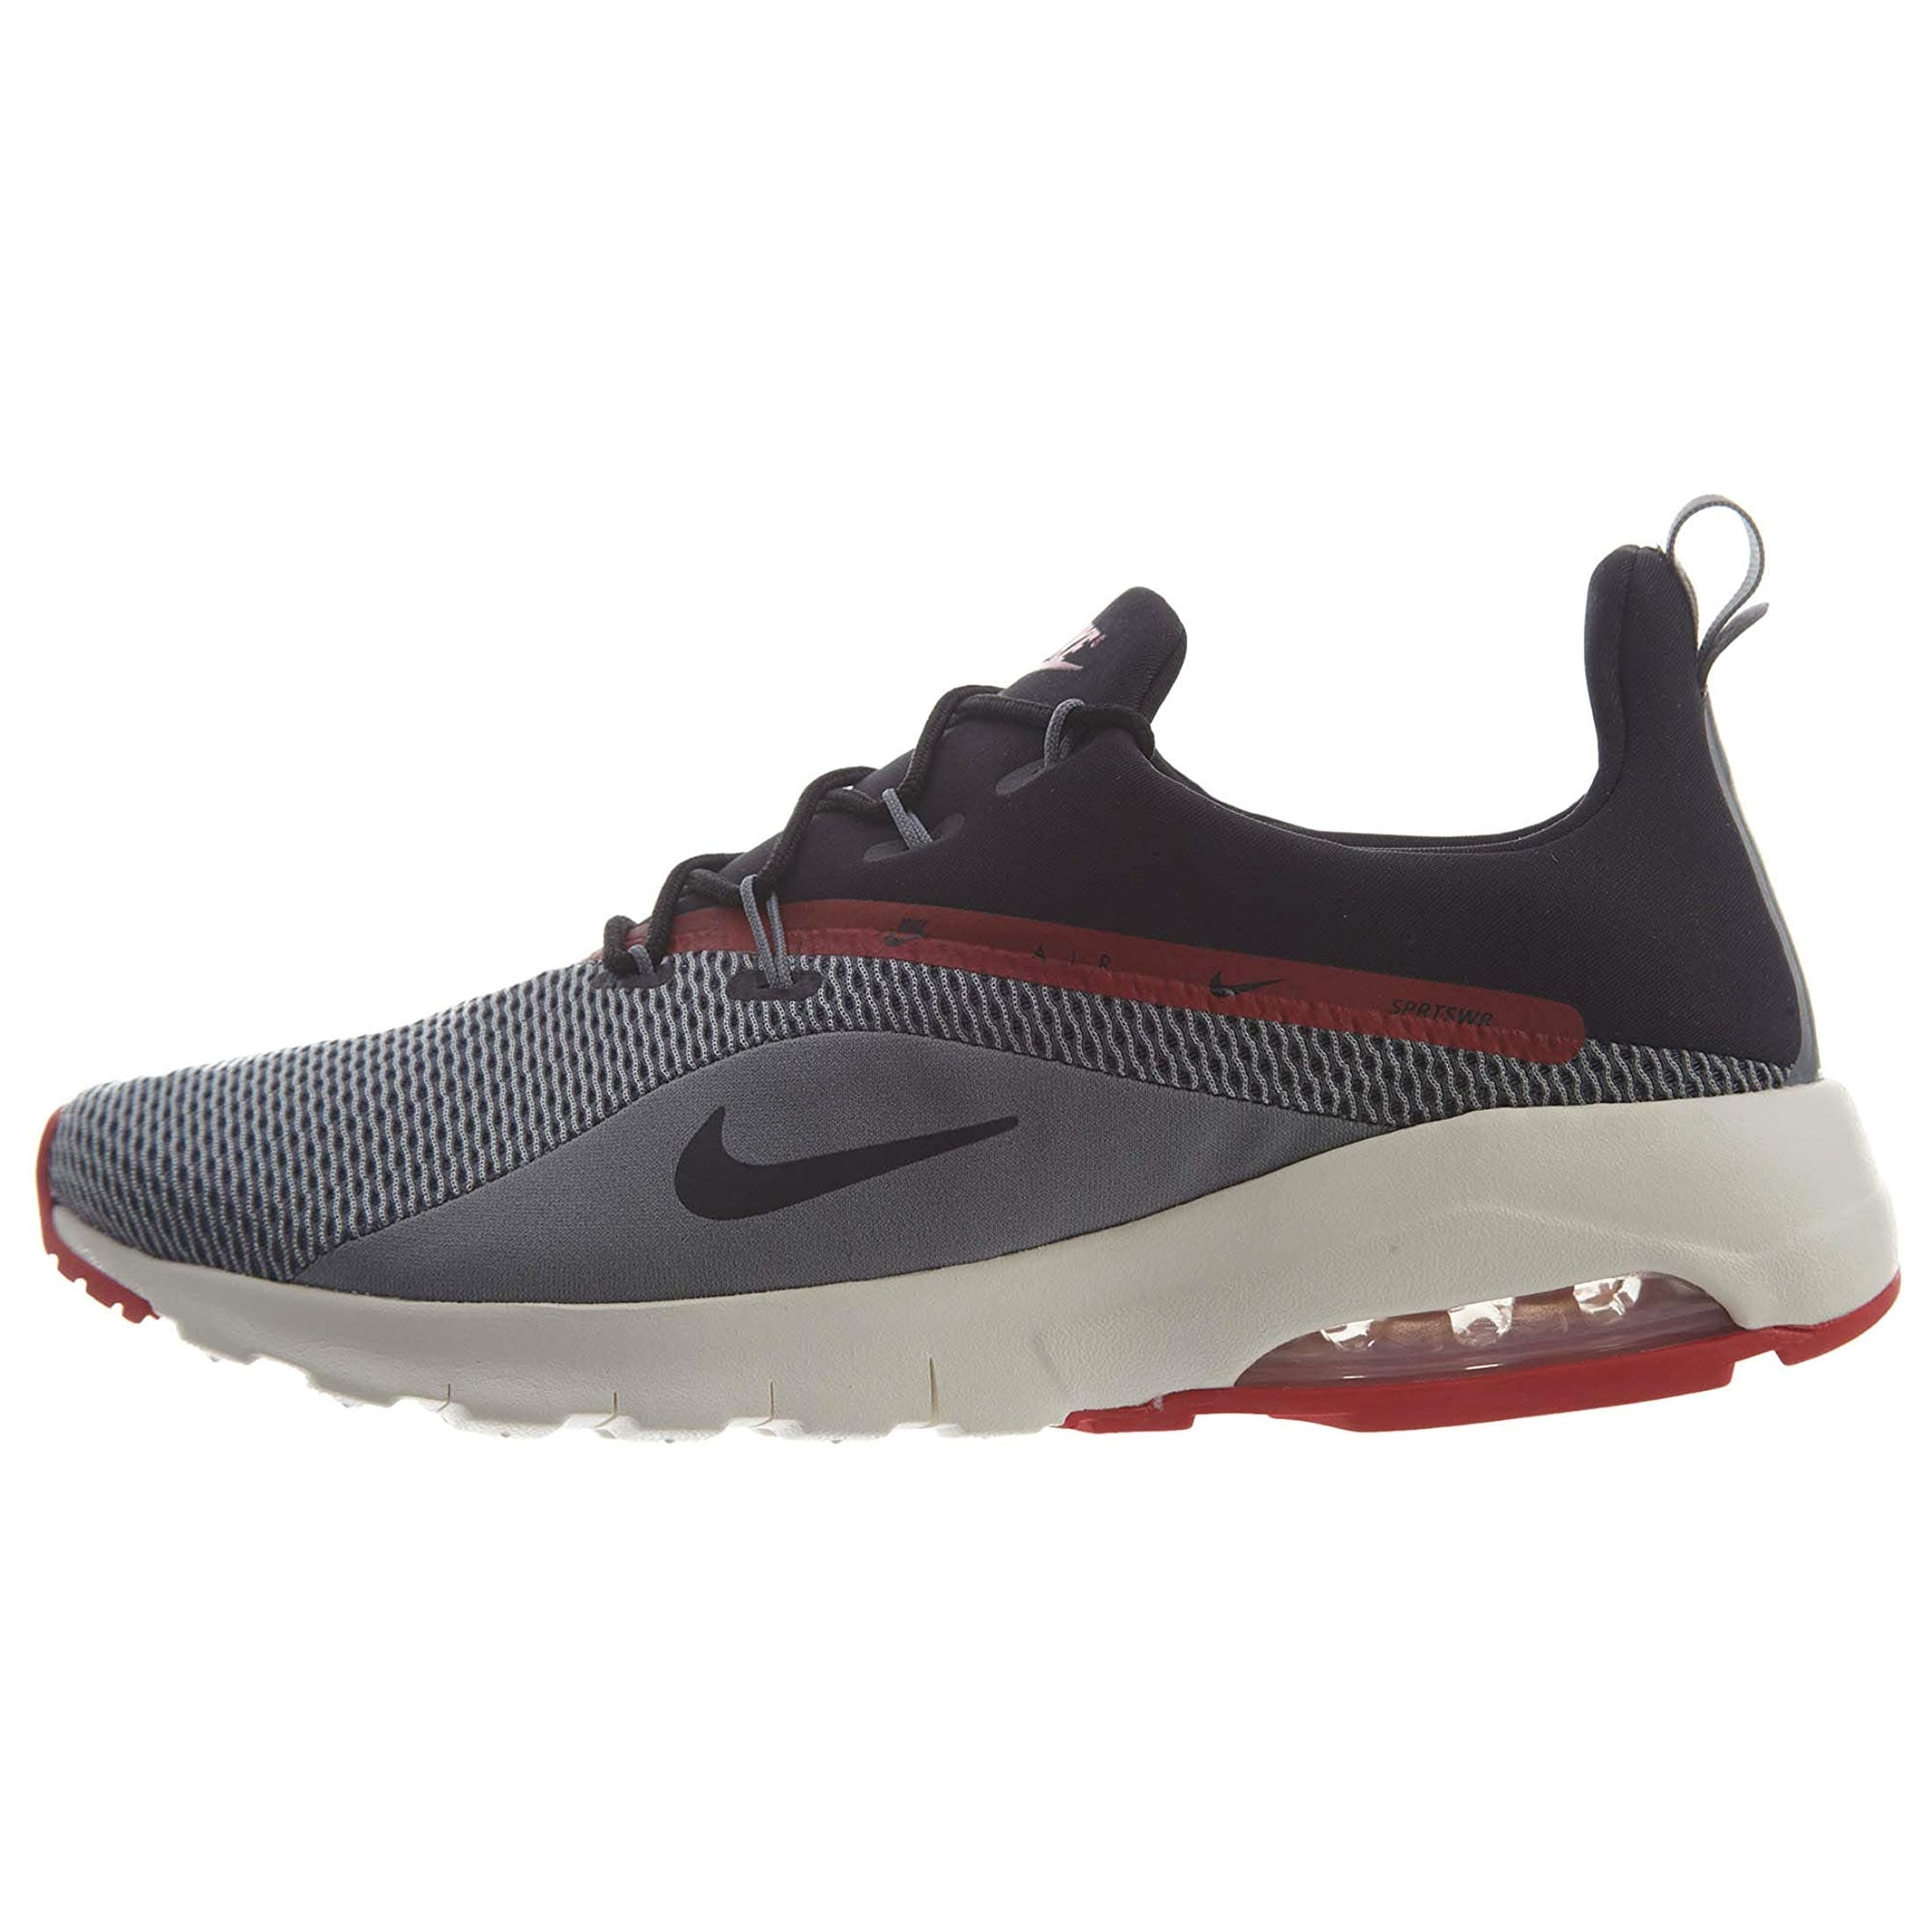 fbfdcc3737 Shop Nike Men's Air Max Motion Racer 2 Sneakers, Grey/Black - Free Shipping  Today - Overstock - 27125064